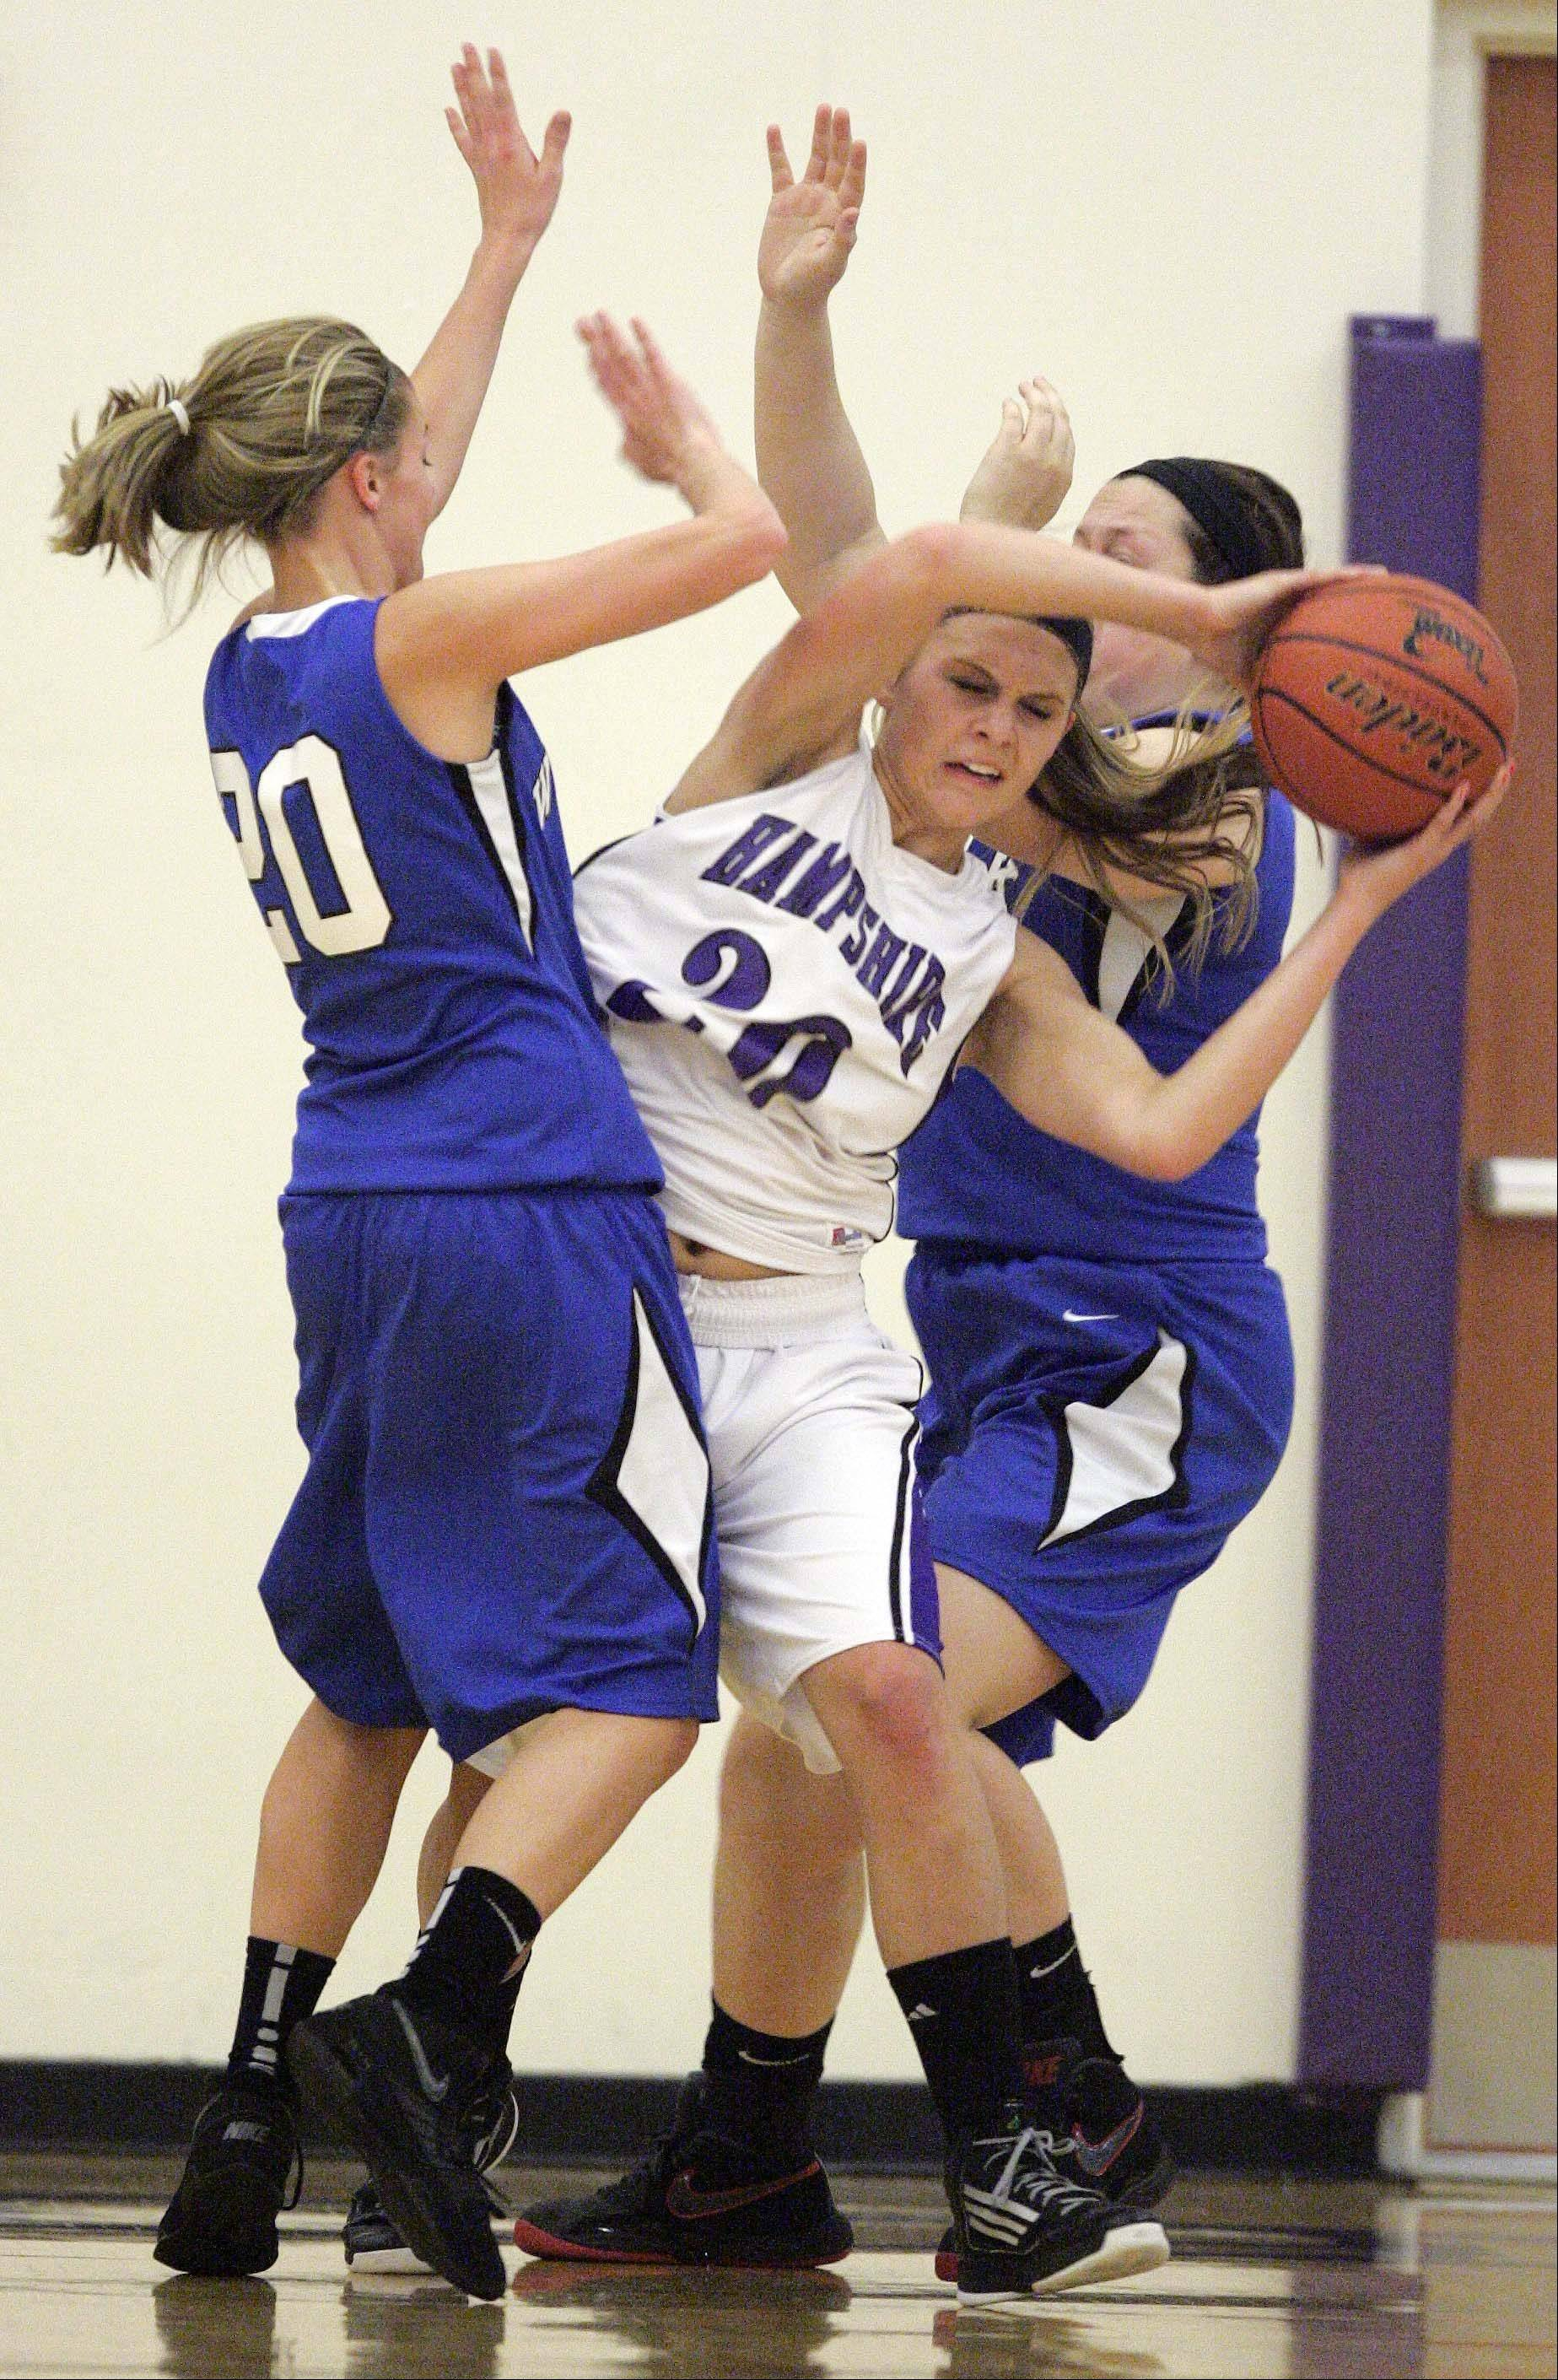 Hampshire's Lizzy Panzica, 20, slips between Woodstock's Sydney Haulotte, 20, and AMber Roberts, 44 during Woodstock at Hampshire girls basketball Saturday January 12, 2013.